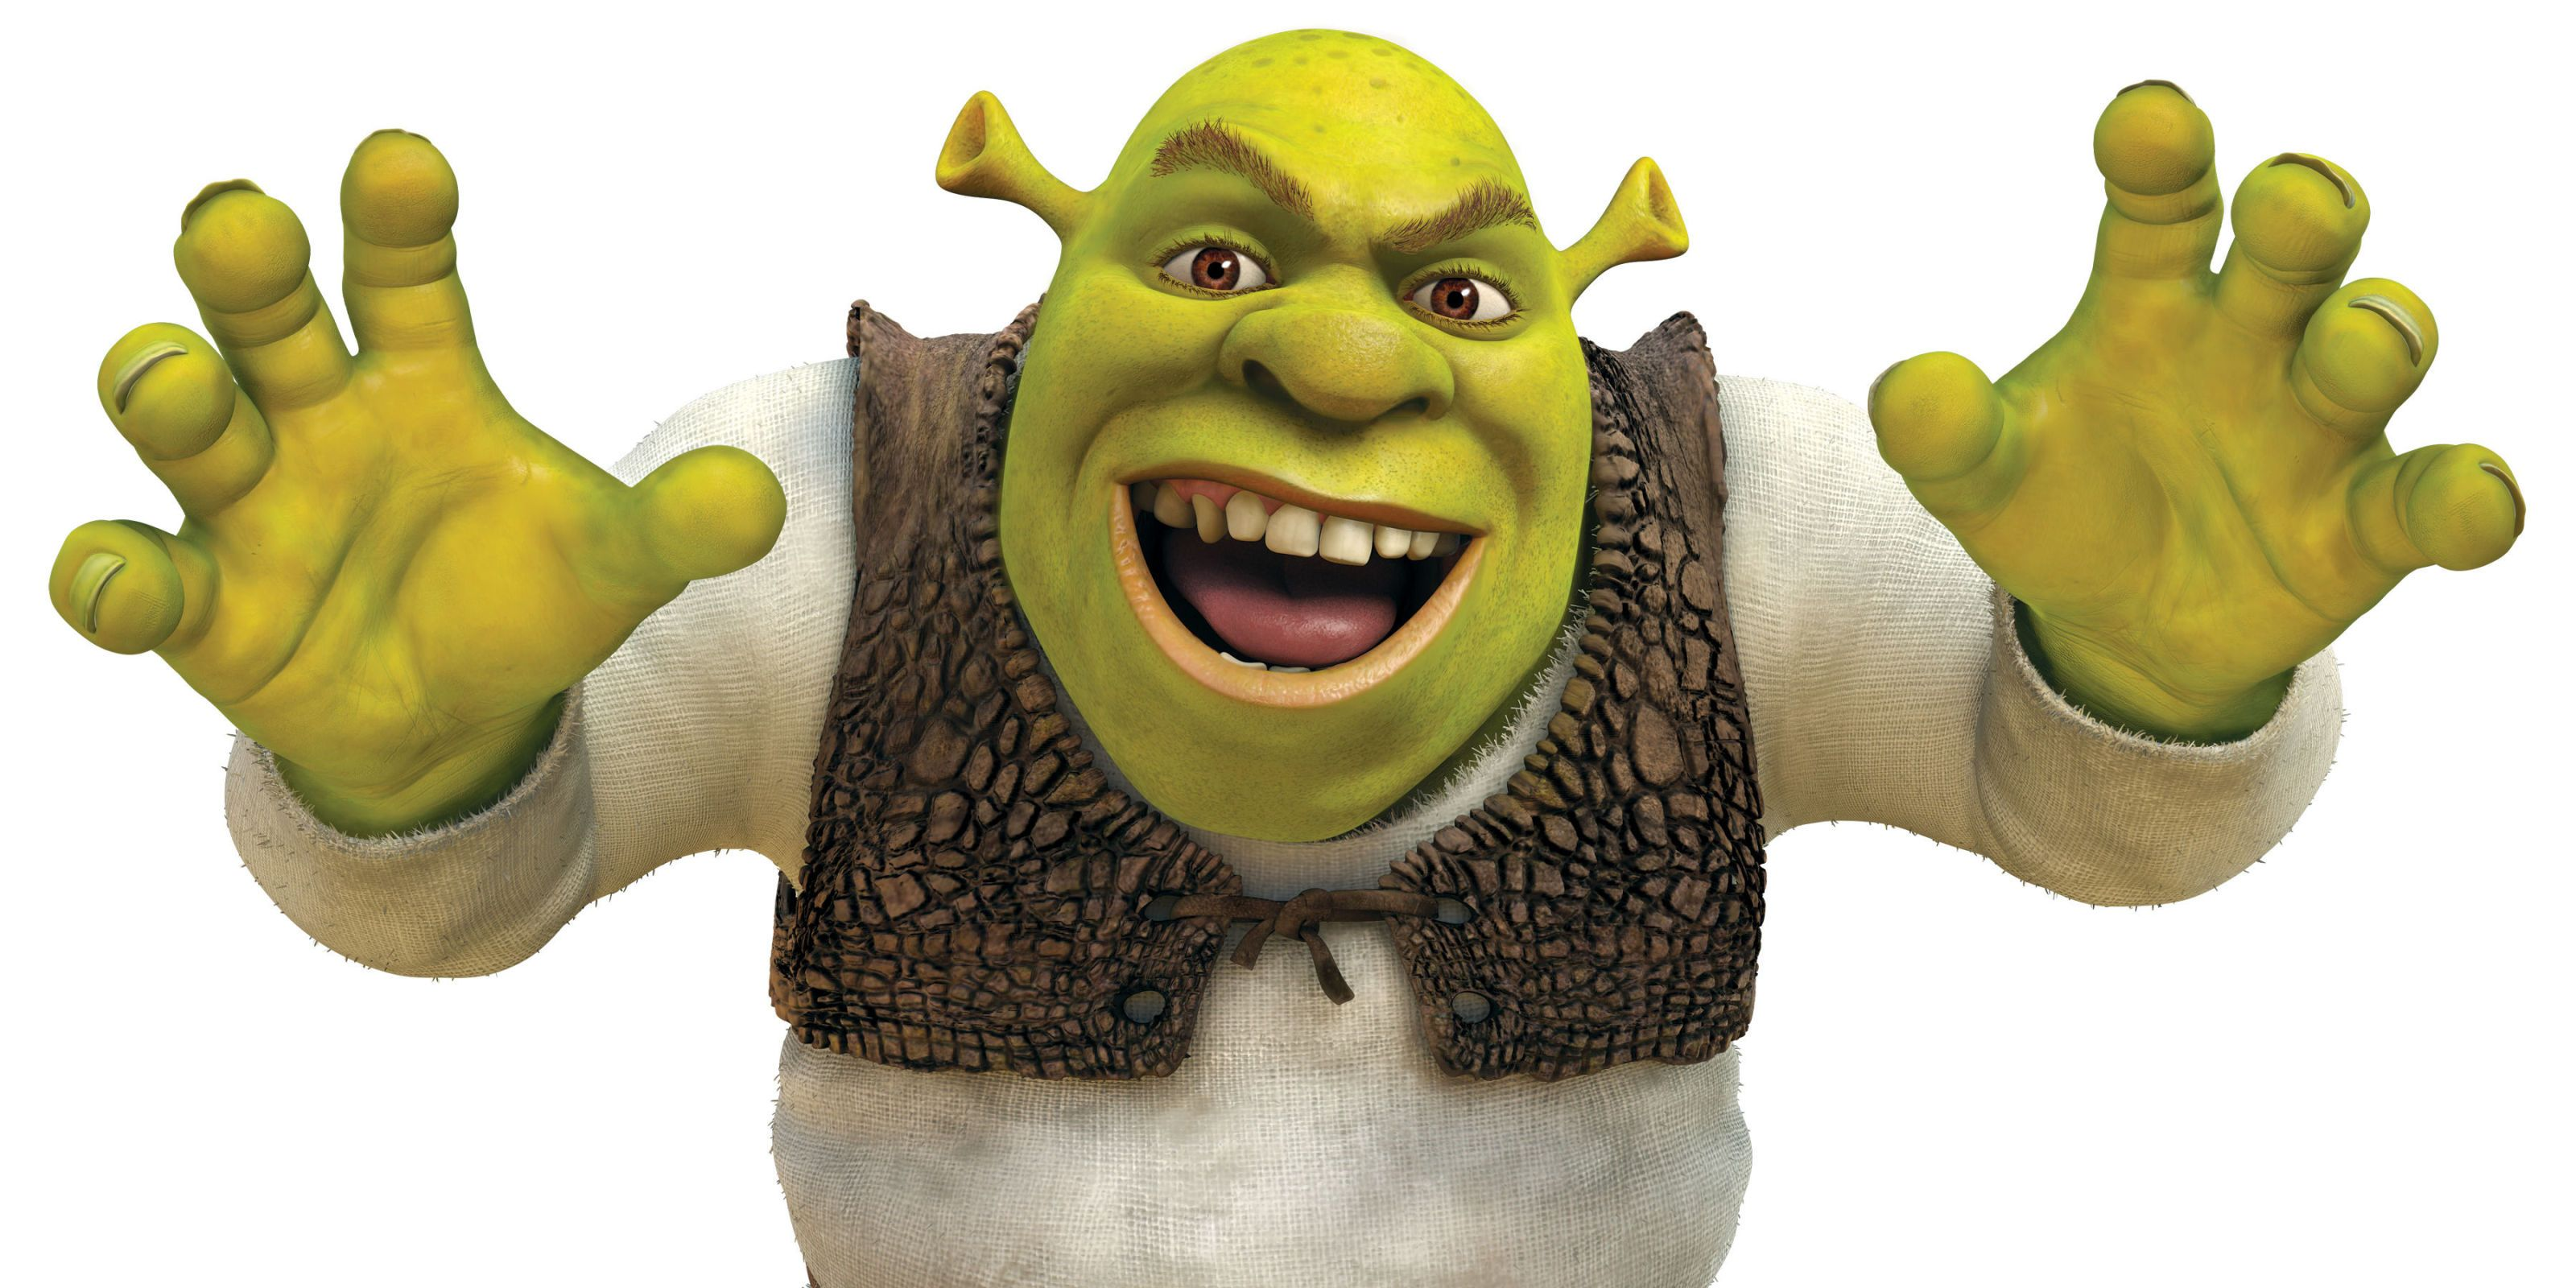 Never Before Seen Shrek Footage Reveals Your Fave Ogre Almost Sounded VERY Different